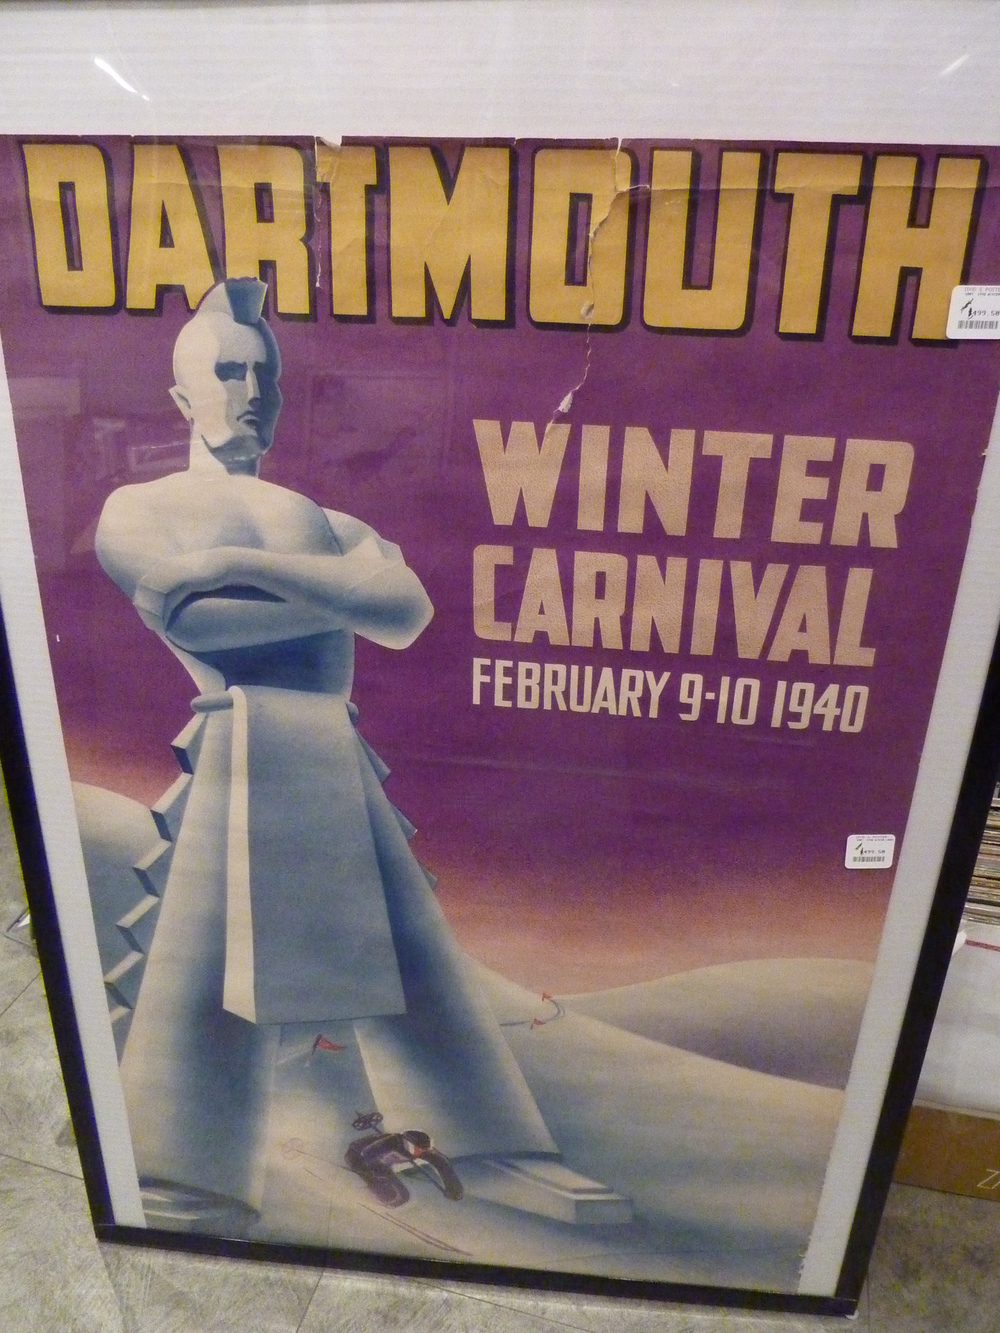 Dartmouth Winter Carnival 1940